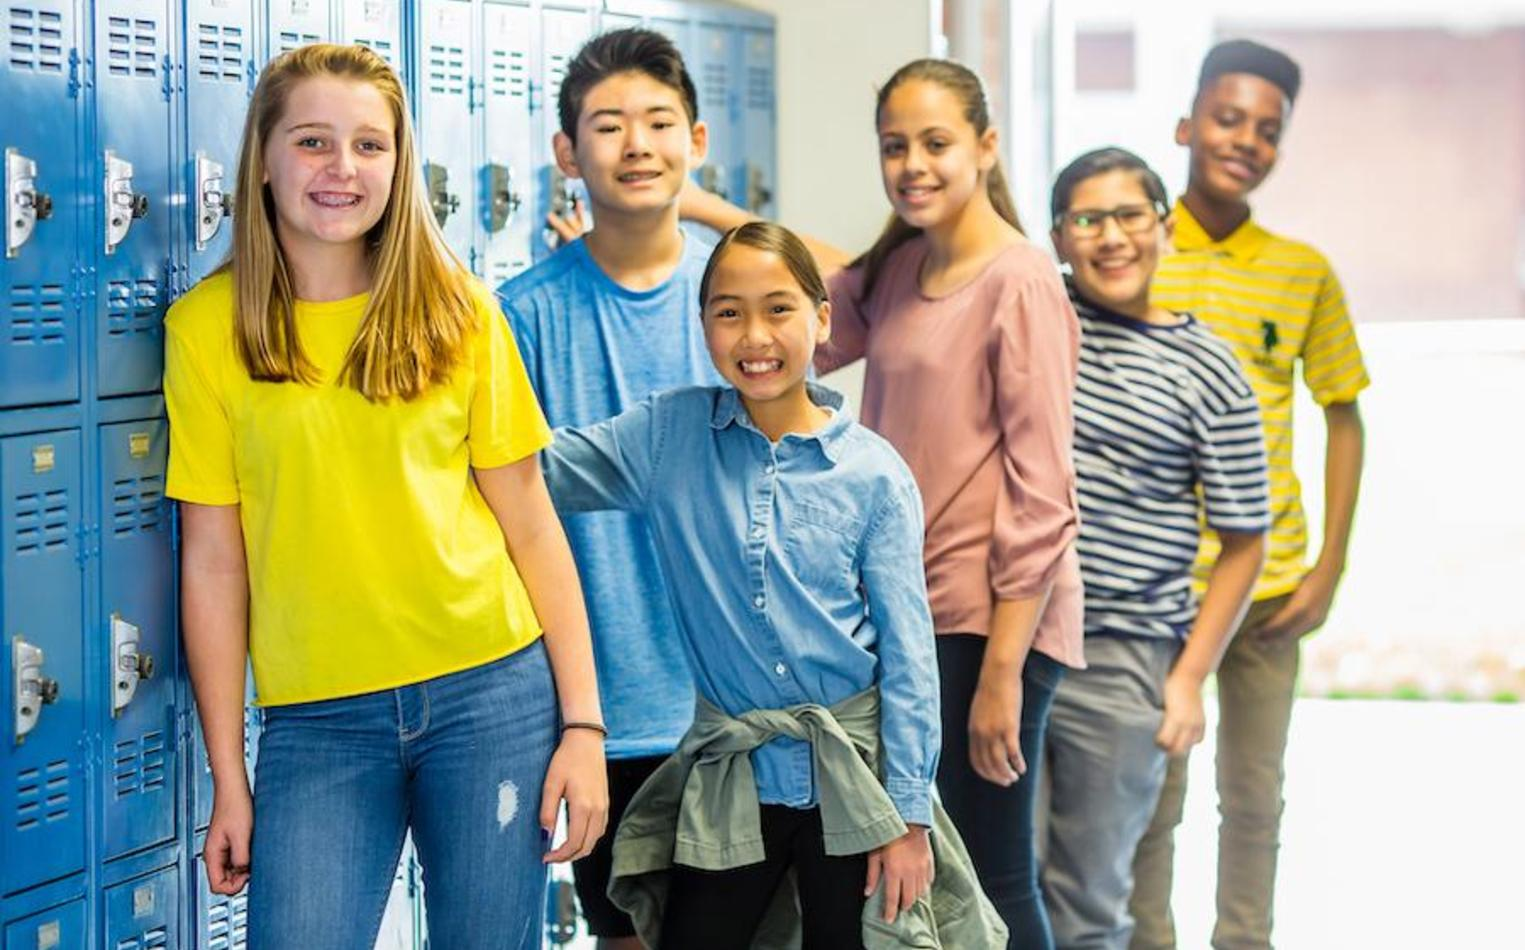 Middle school students hanging out near lockers.